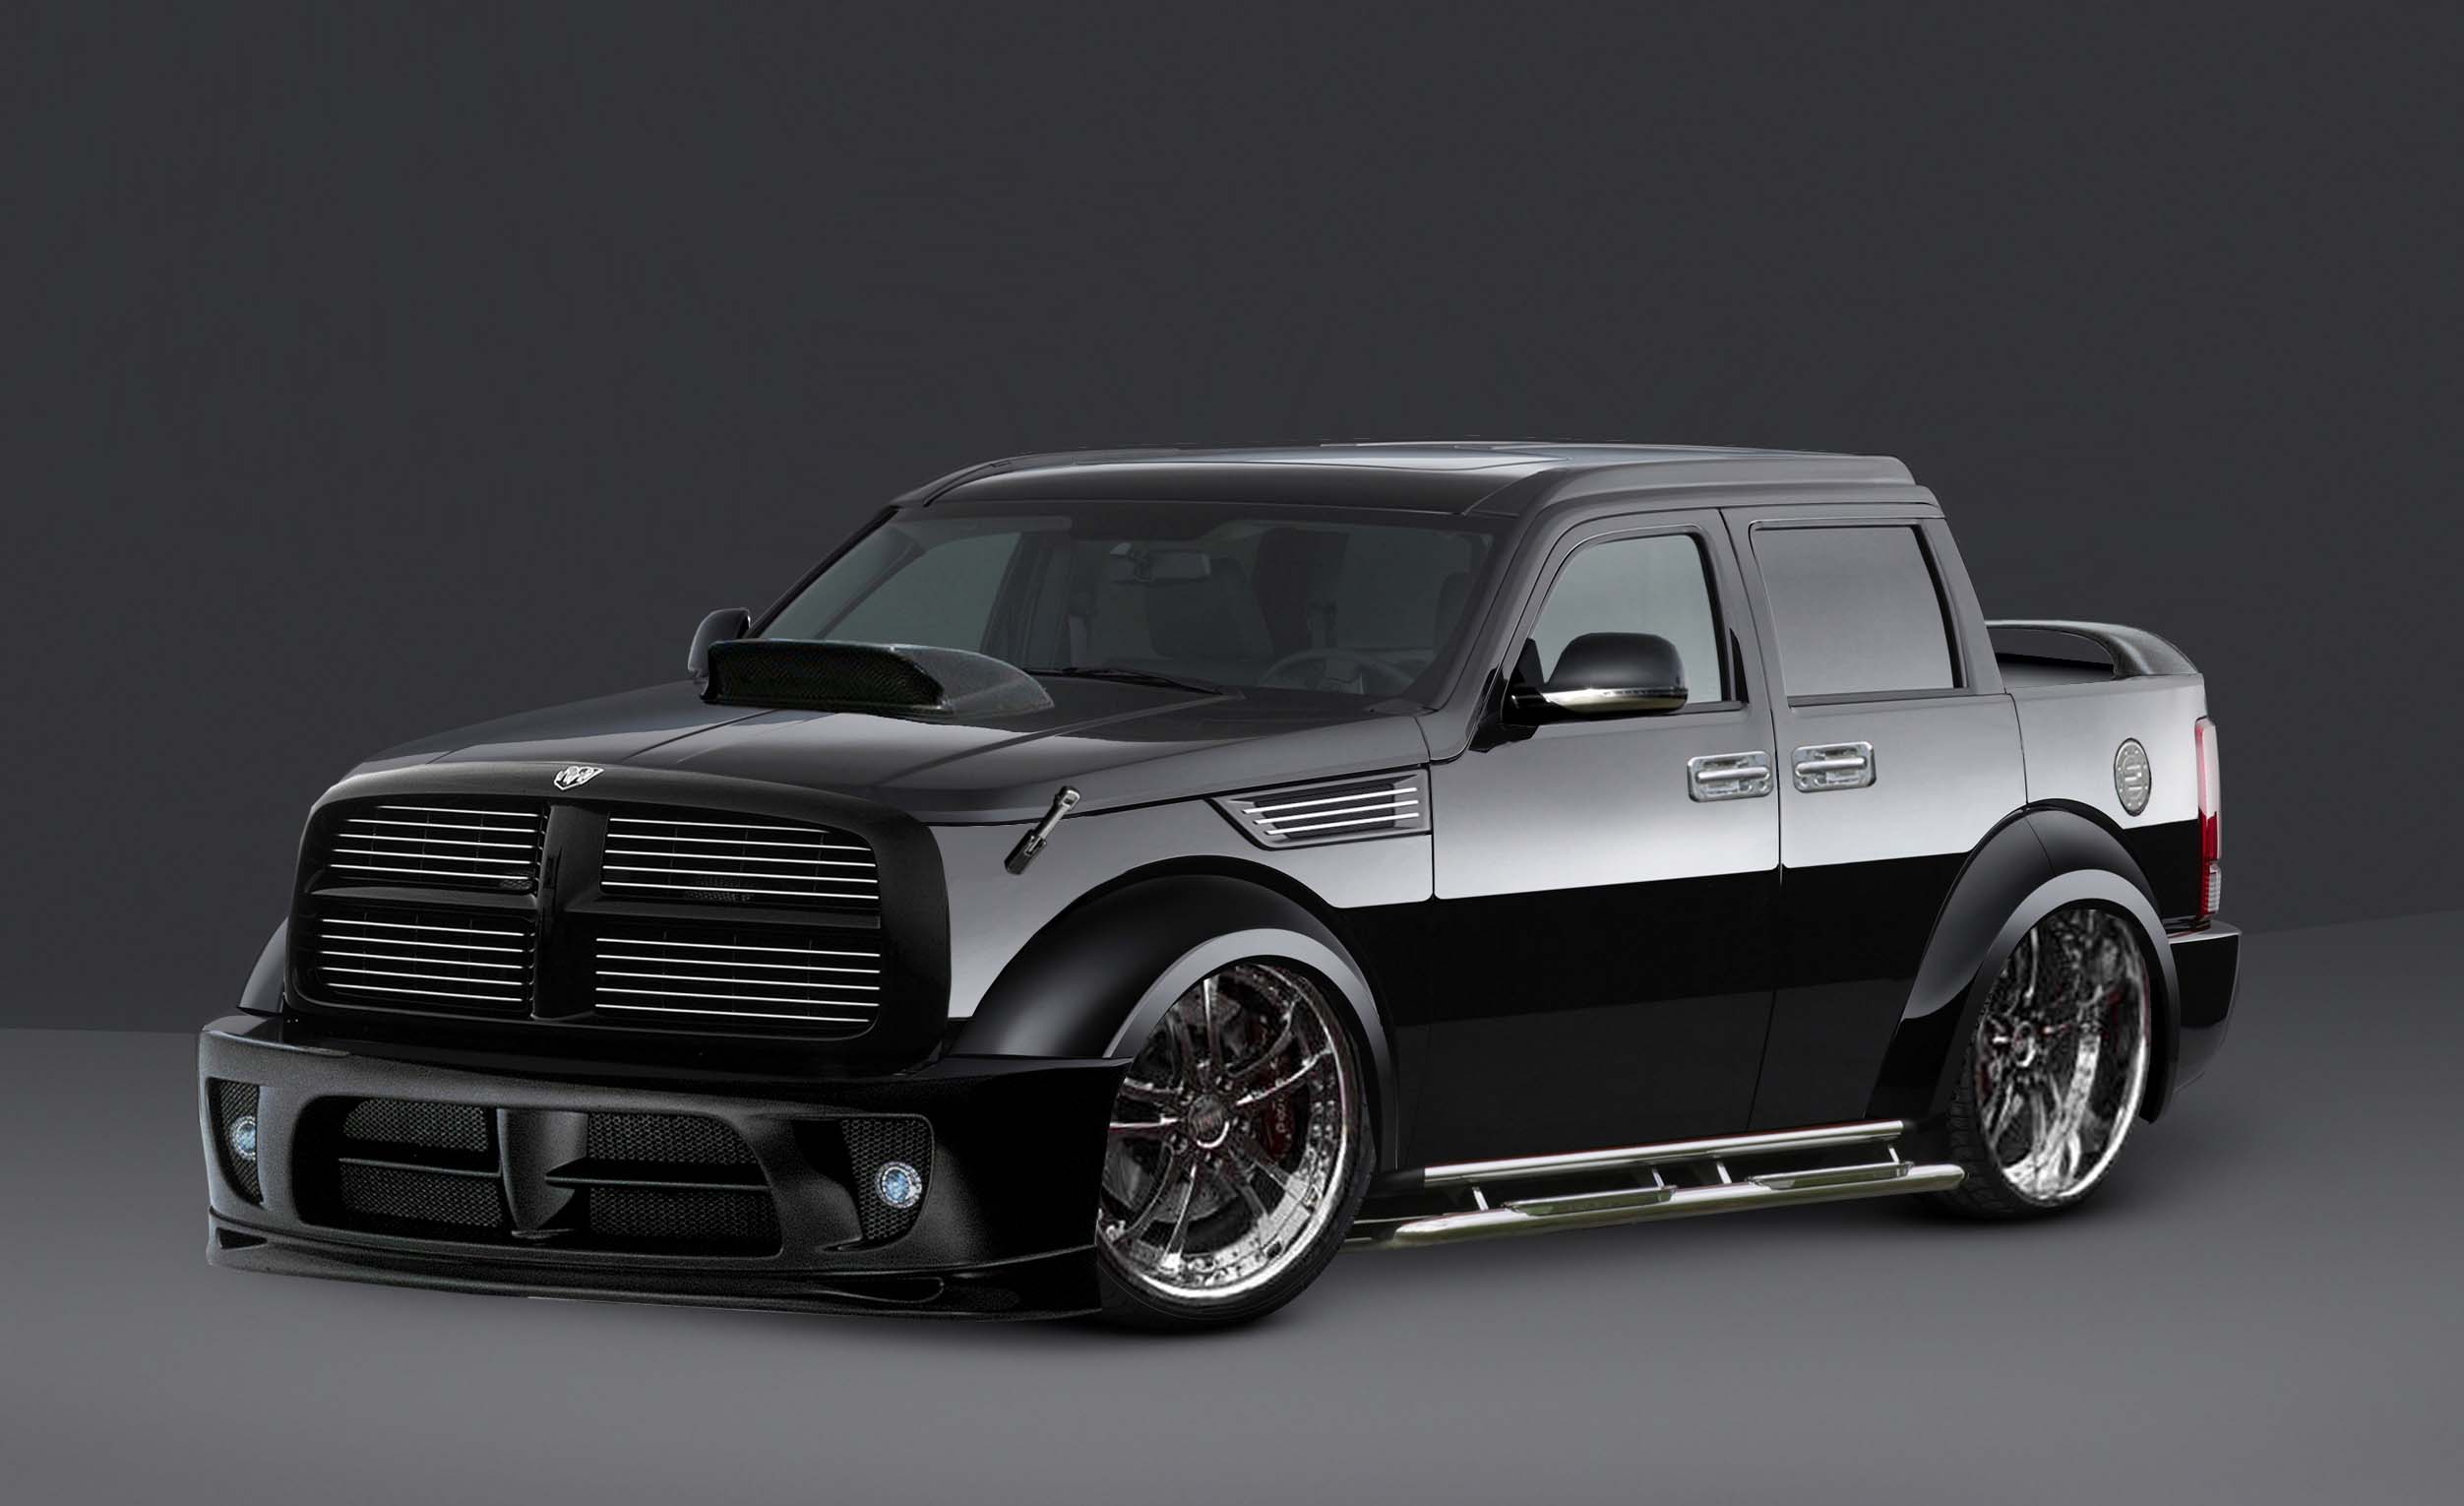 Car Brands Starting With A >> Dodge Nitro 2015: Review, Amazing Pictures and Images ...